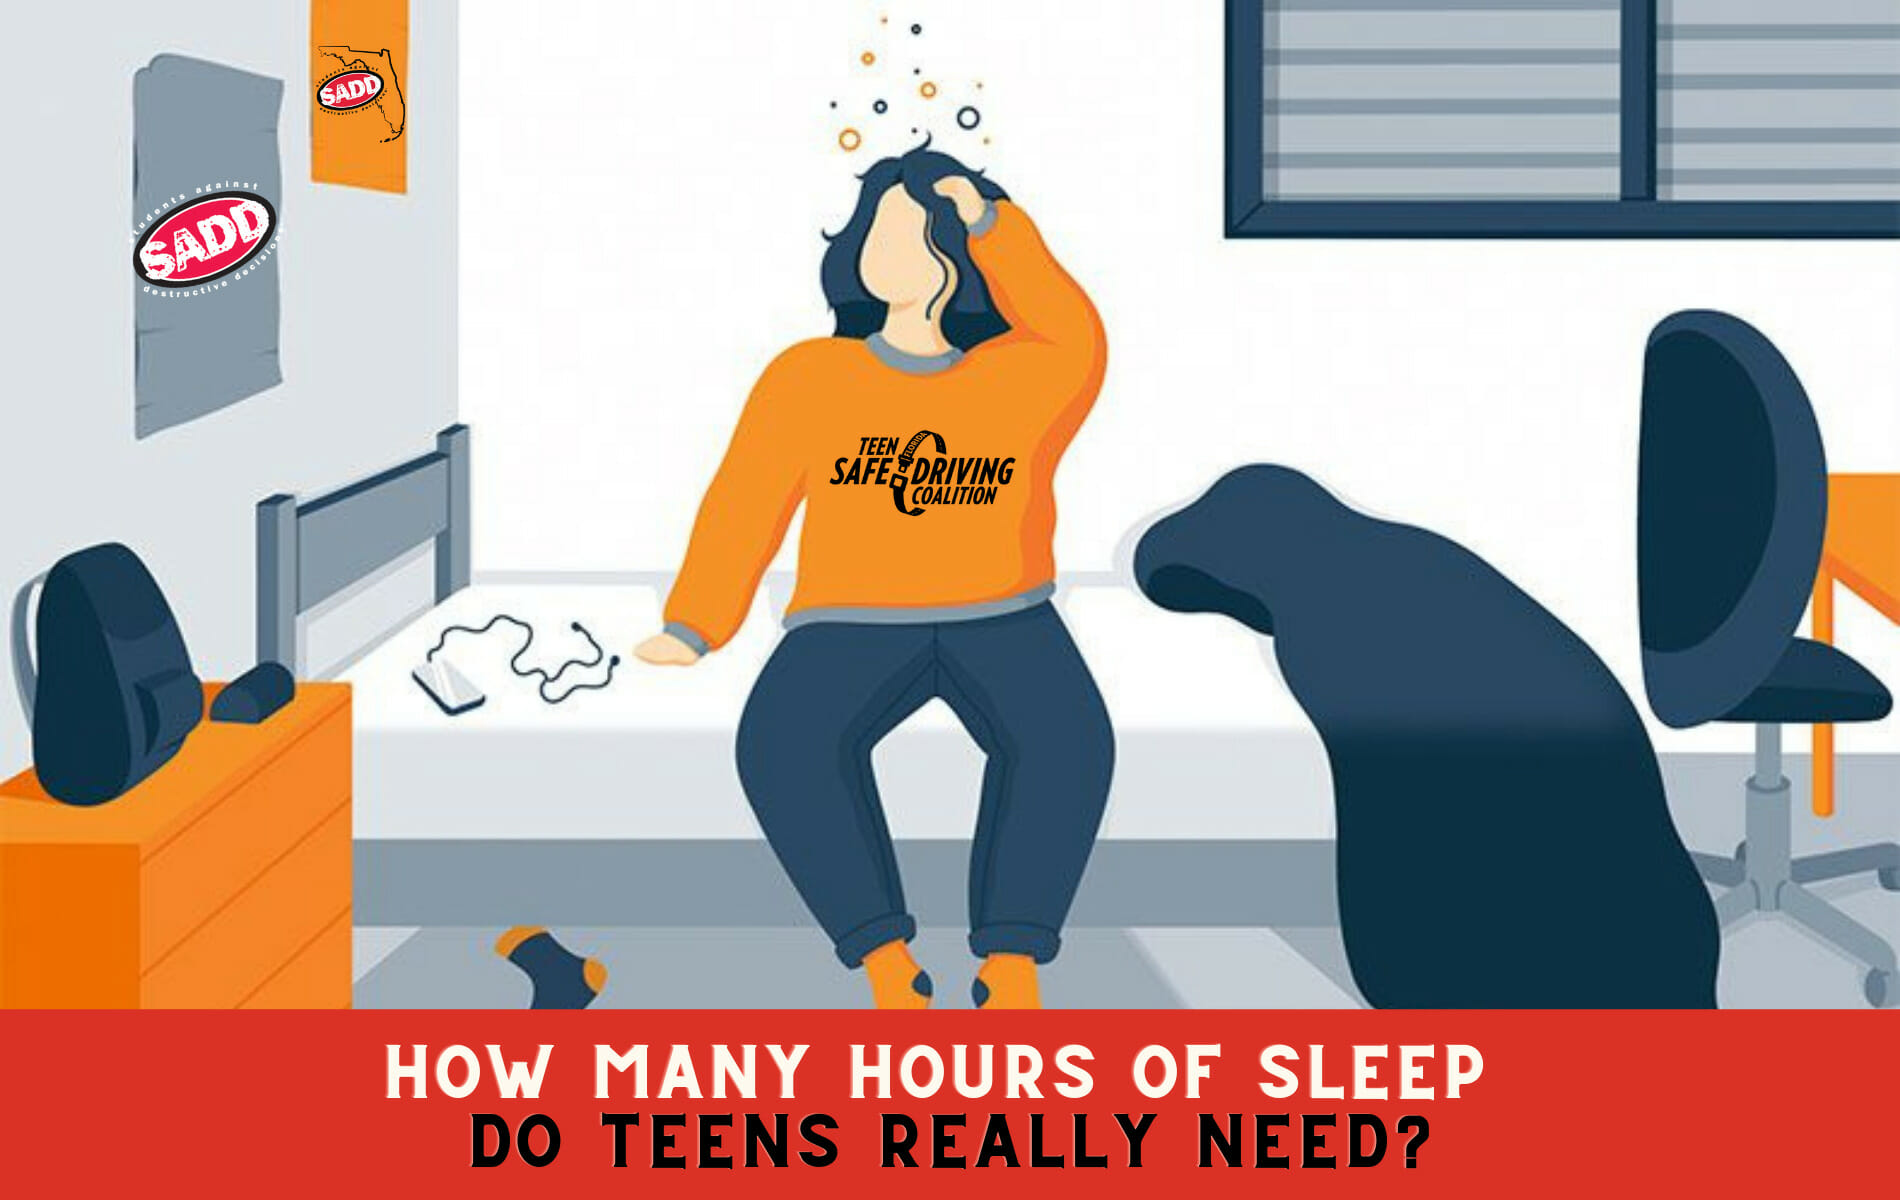 How Many Hours of Sleep Do Teens Really Need?